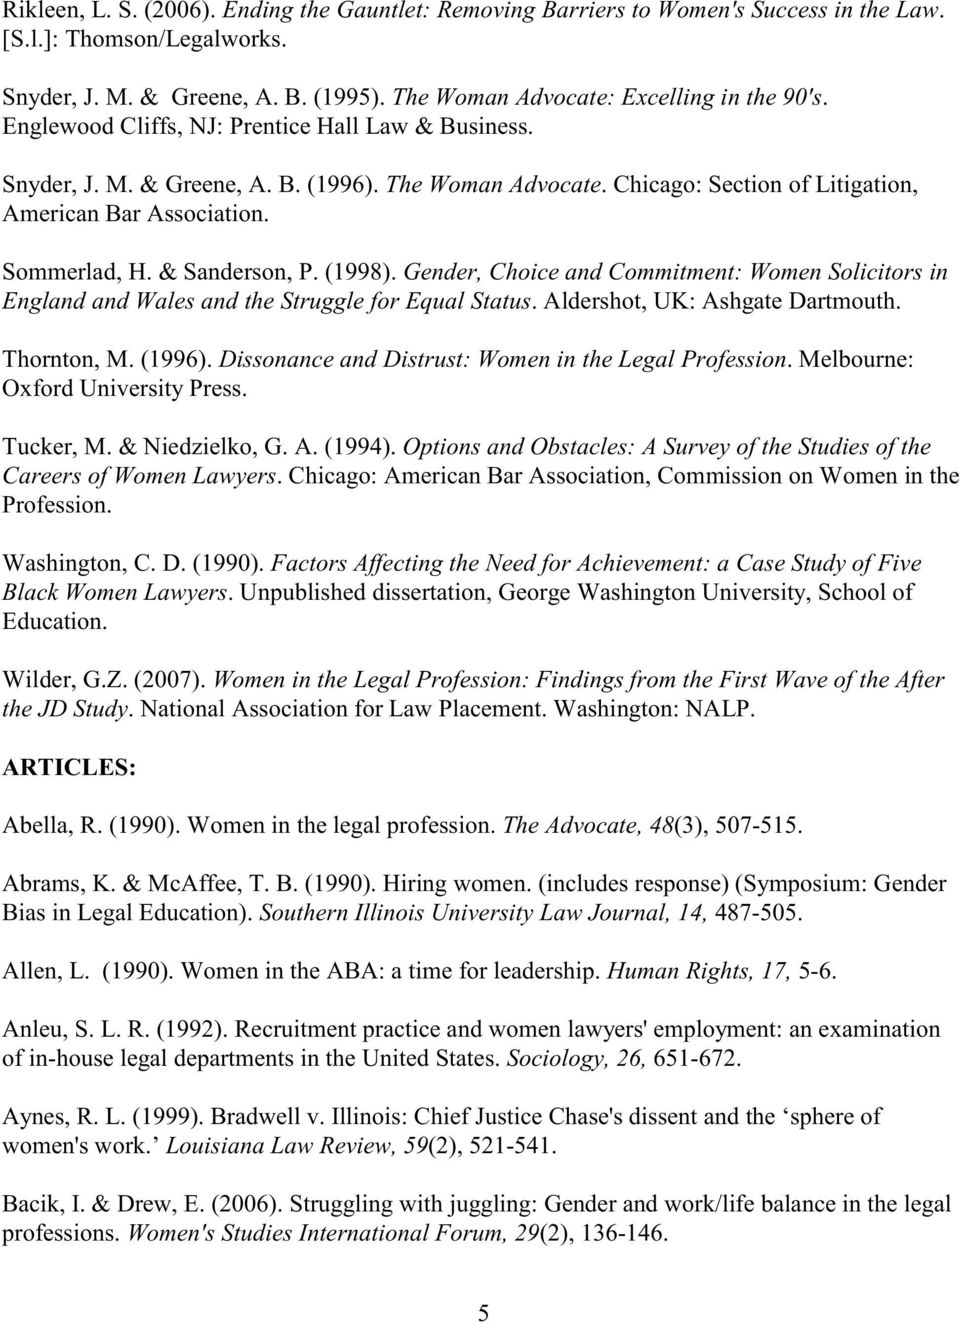 Chicago: Section of Litigation, American Bar Association. Sommerlad, H. & Sanderson, P. (1998). Gender, Choice and Commitment: Women Solicitors in England and Wales and the Struggle for Equal Status.